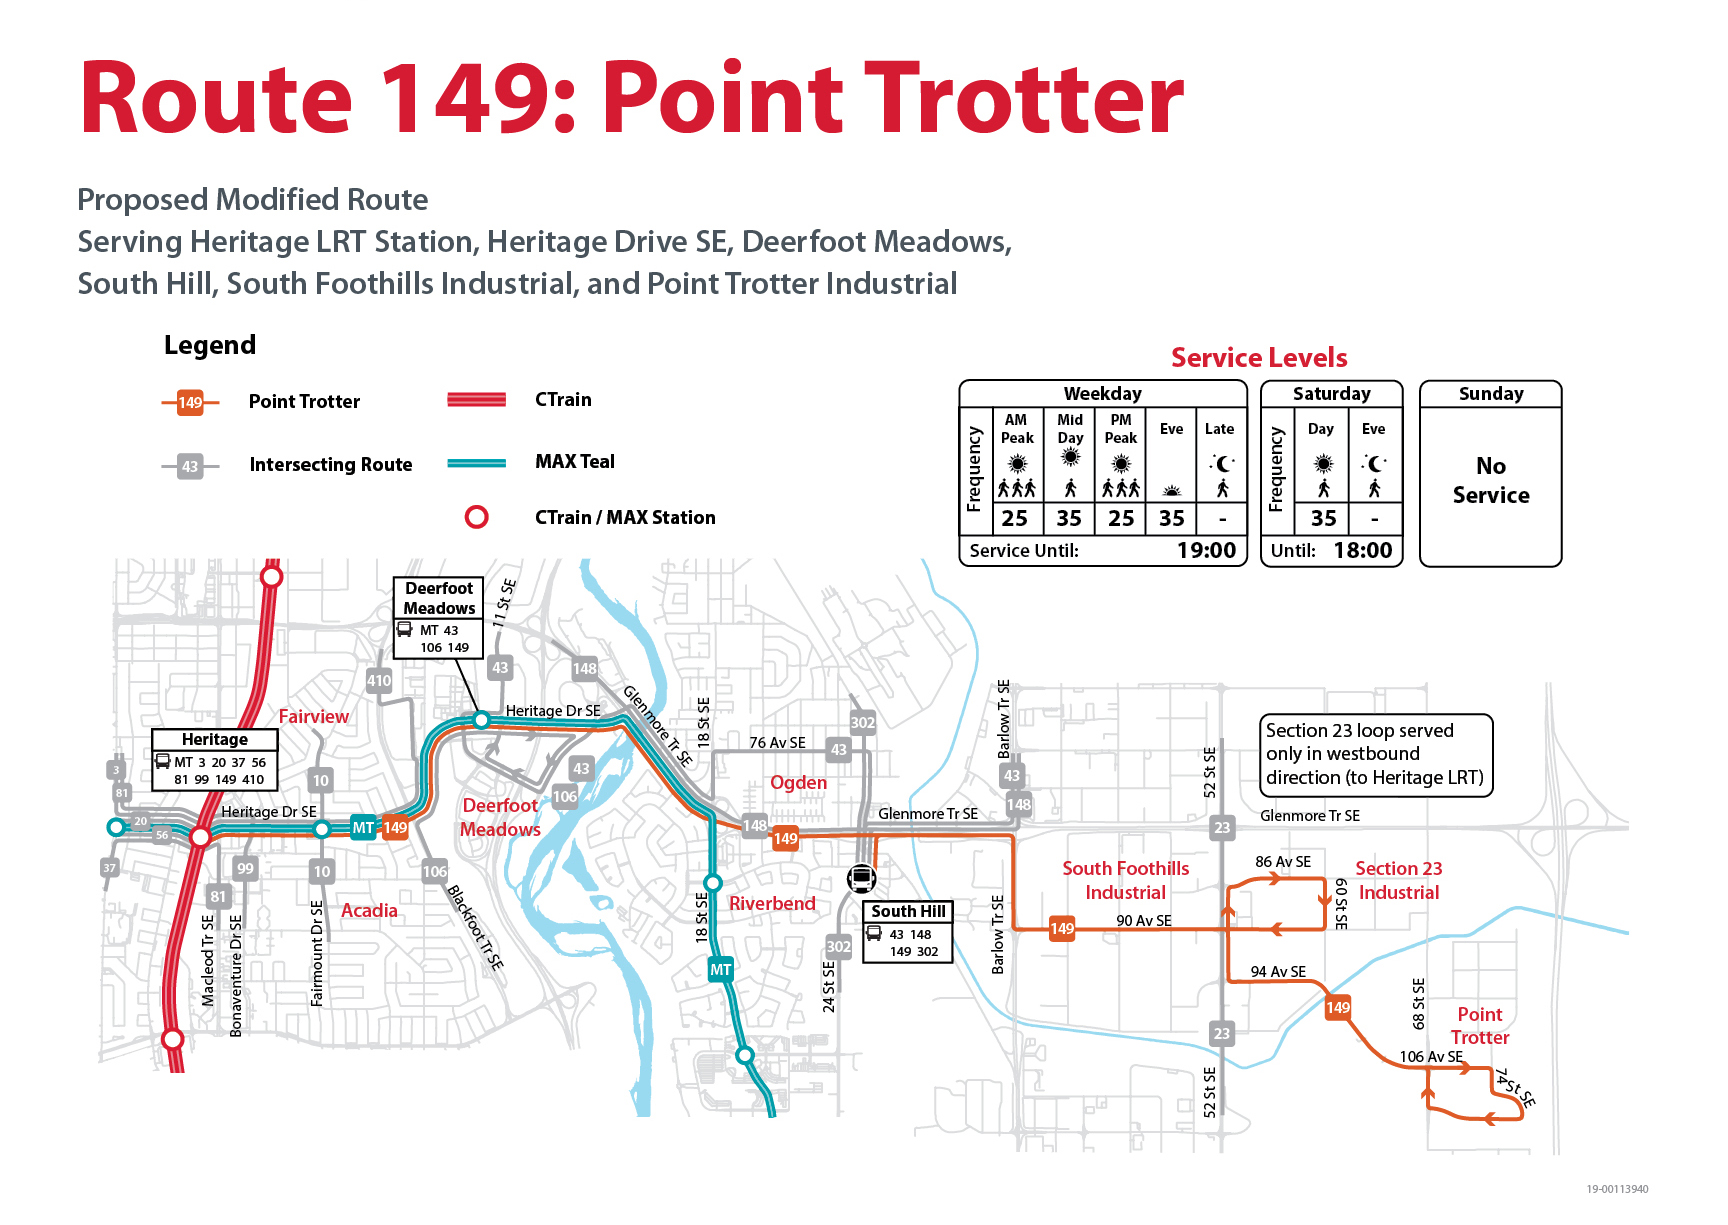 Proposed Changes to Route 149